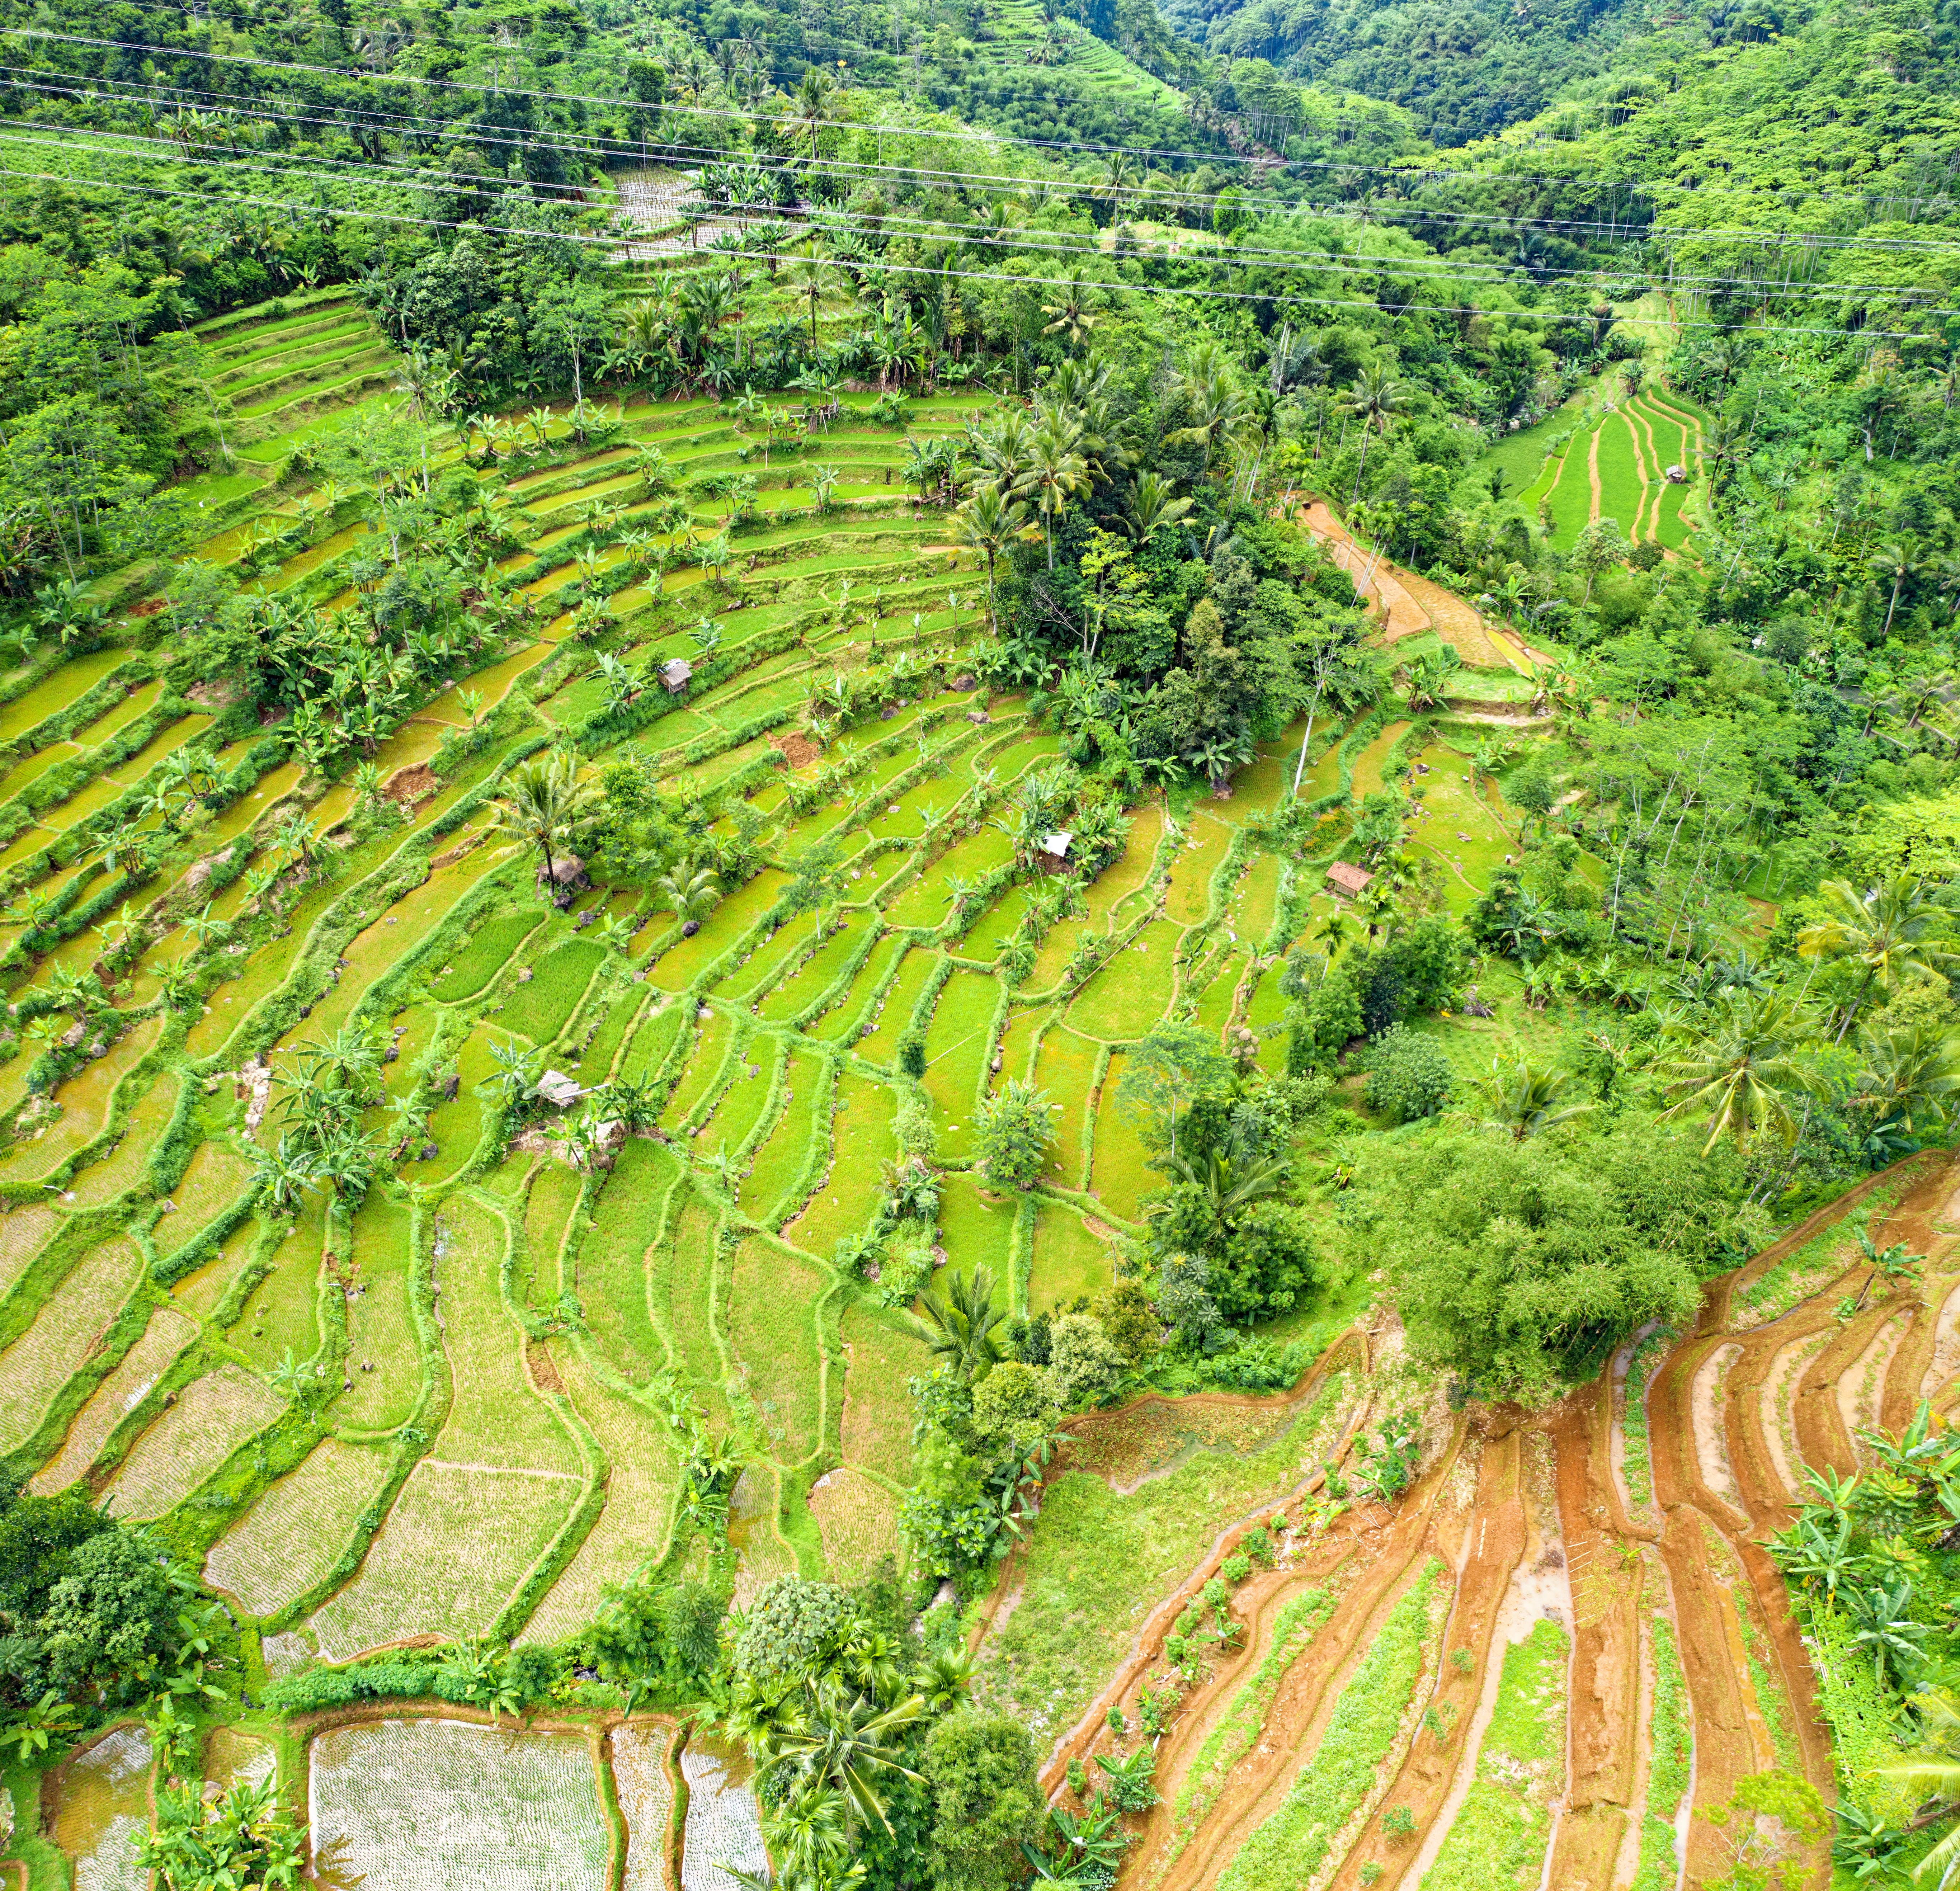 Birds Eye View of Rice Field